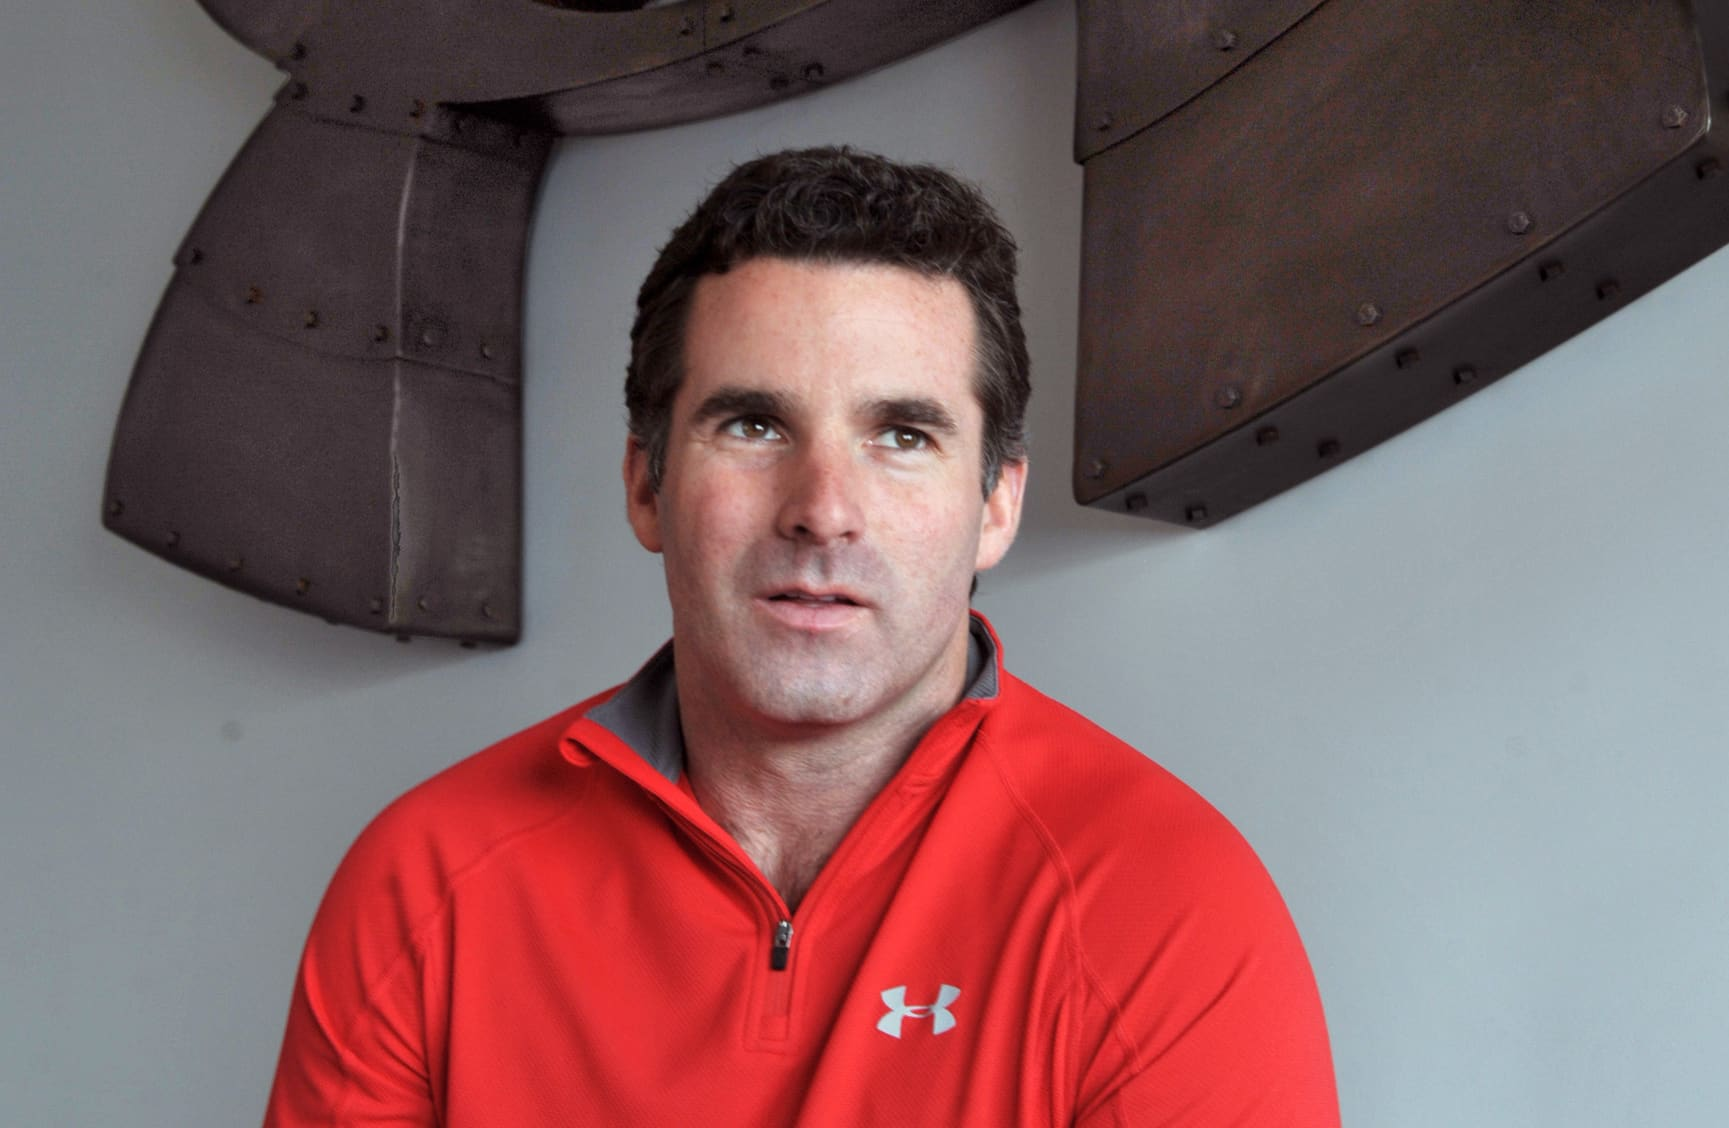 Kevin Plank started Under Armour in his grandmother's basement; 23 years later, he hands over the reins